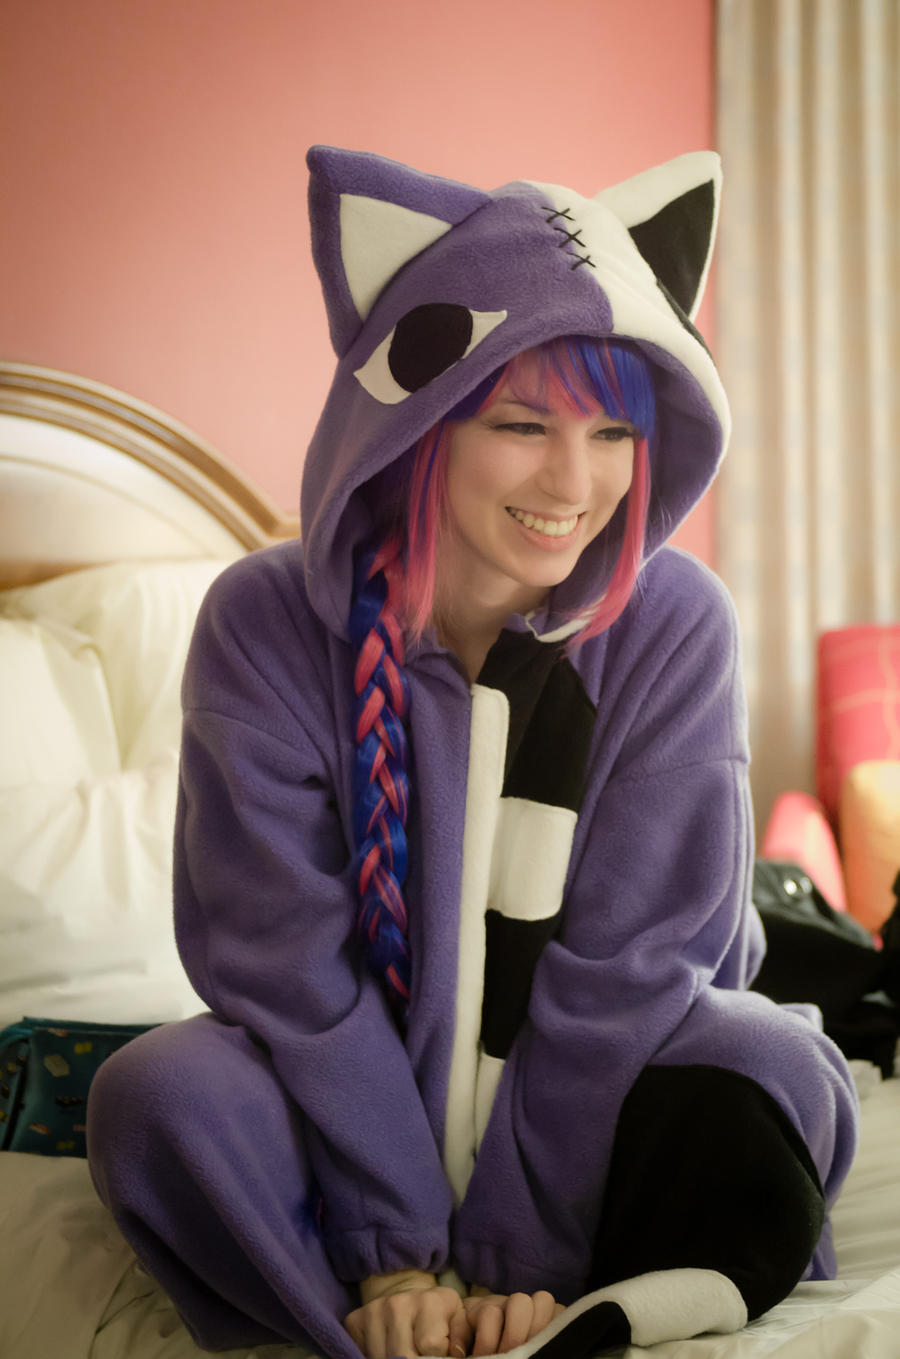 Honeneko Kigurumi by electric-lady